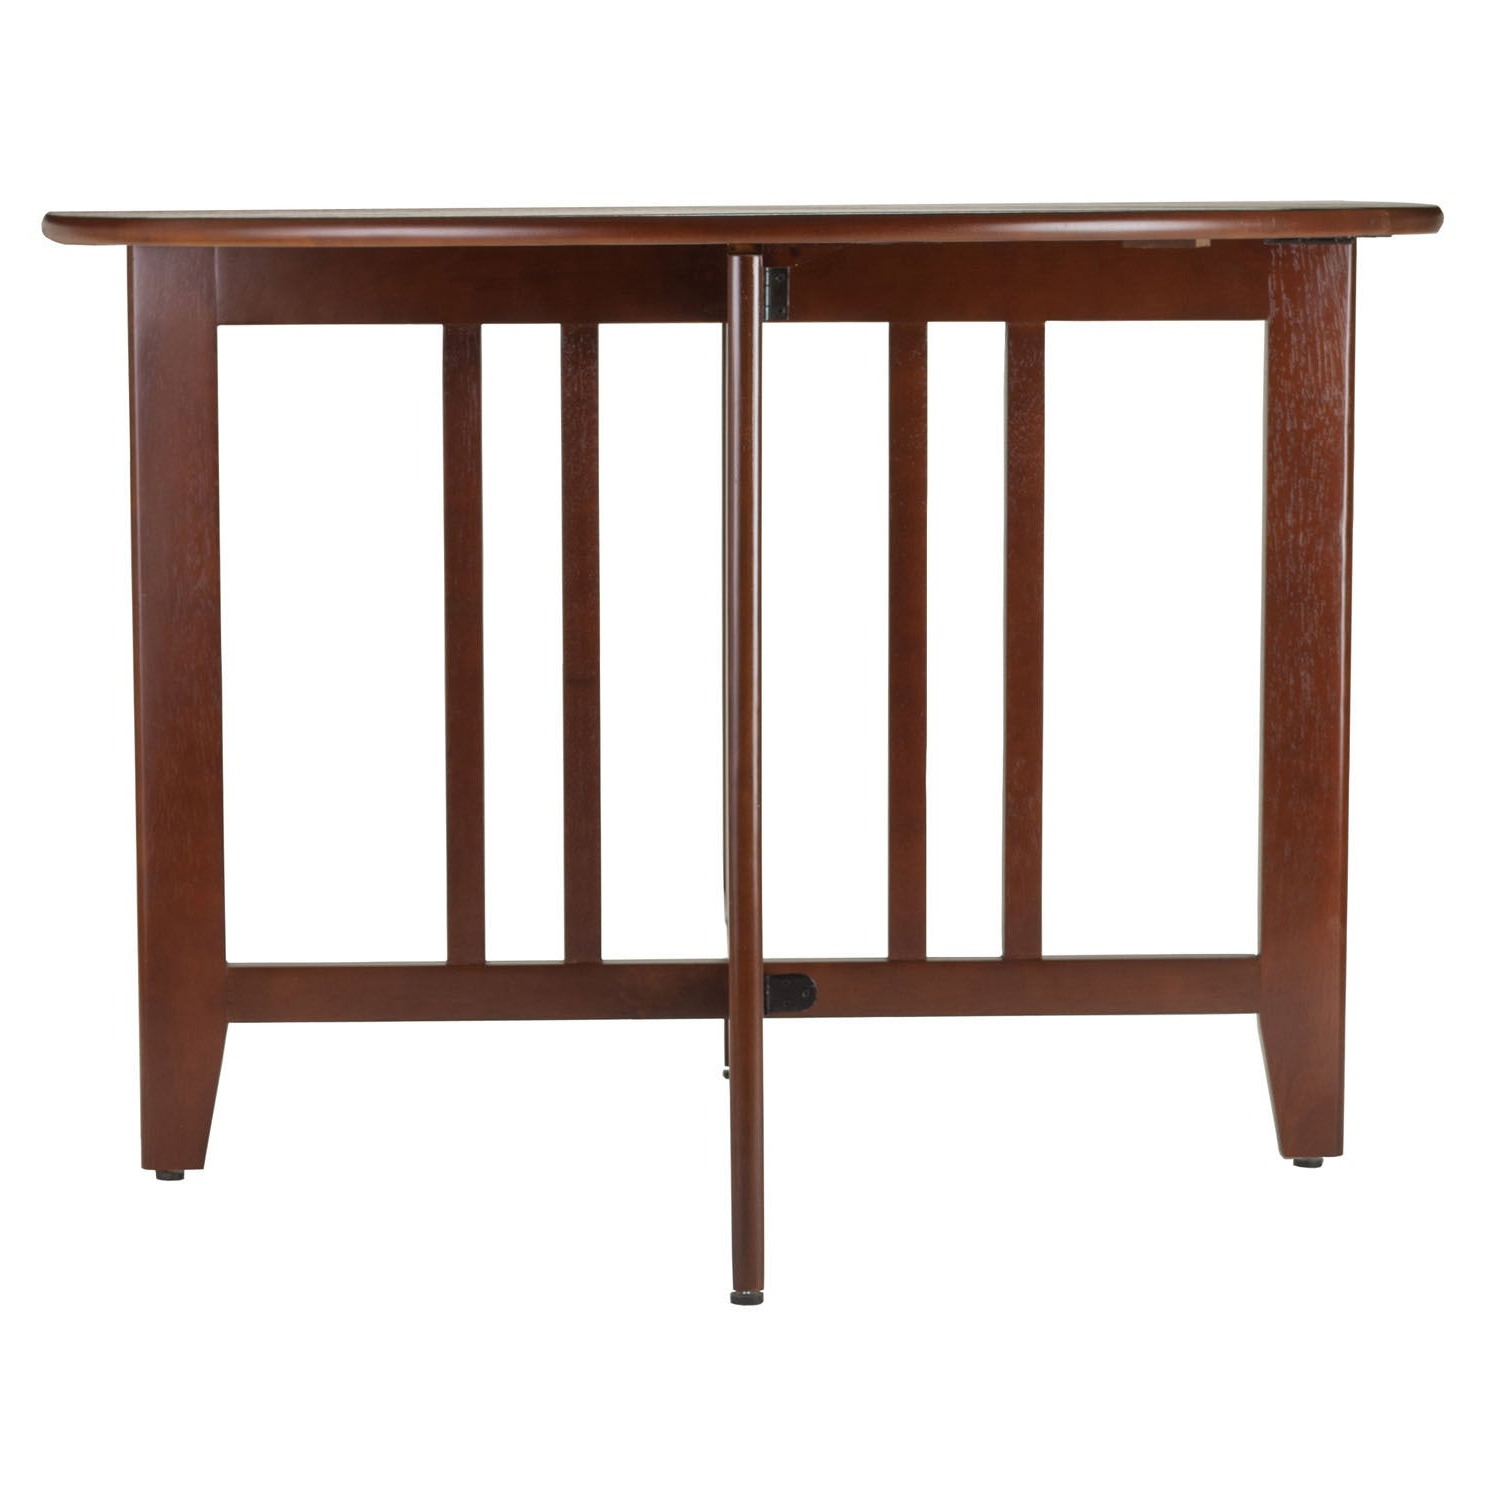 """Alamo Transitional 4 Seating Double Drop Leaf Round Casual Dining Tables In Well Known Alamo Double Drop Leaf Round 42"""" Table Mission – N/a (View 3 of 26)"""